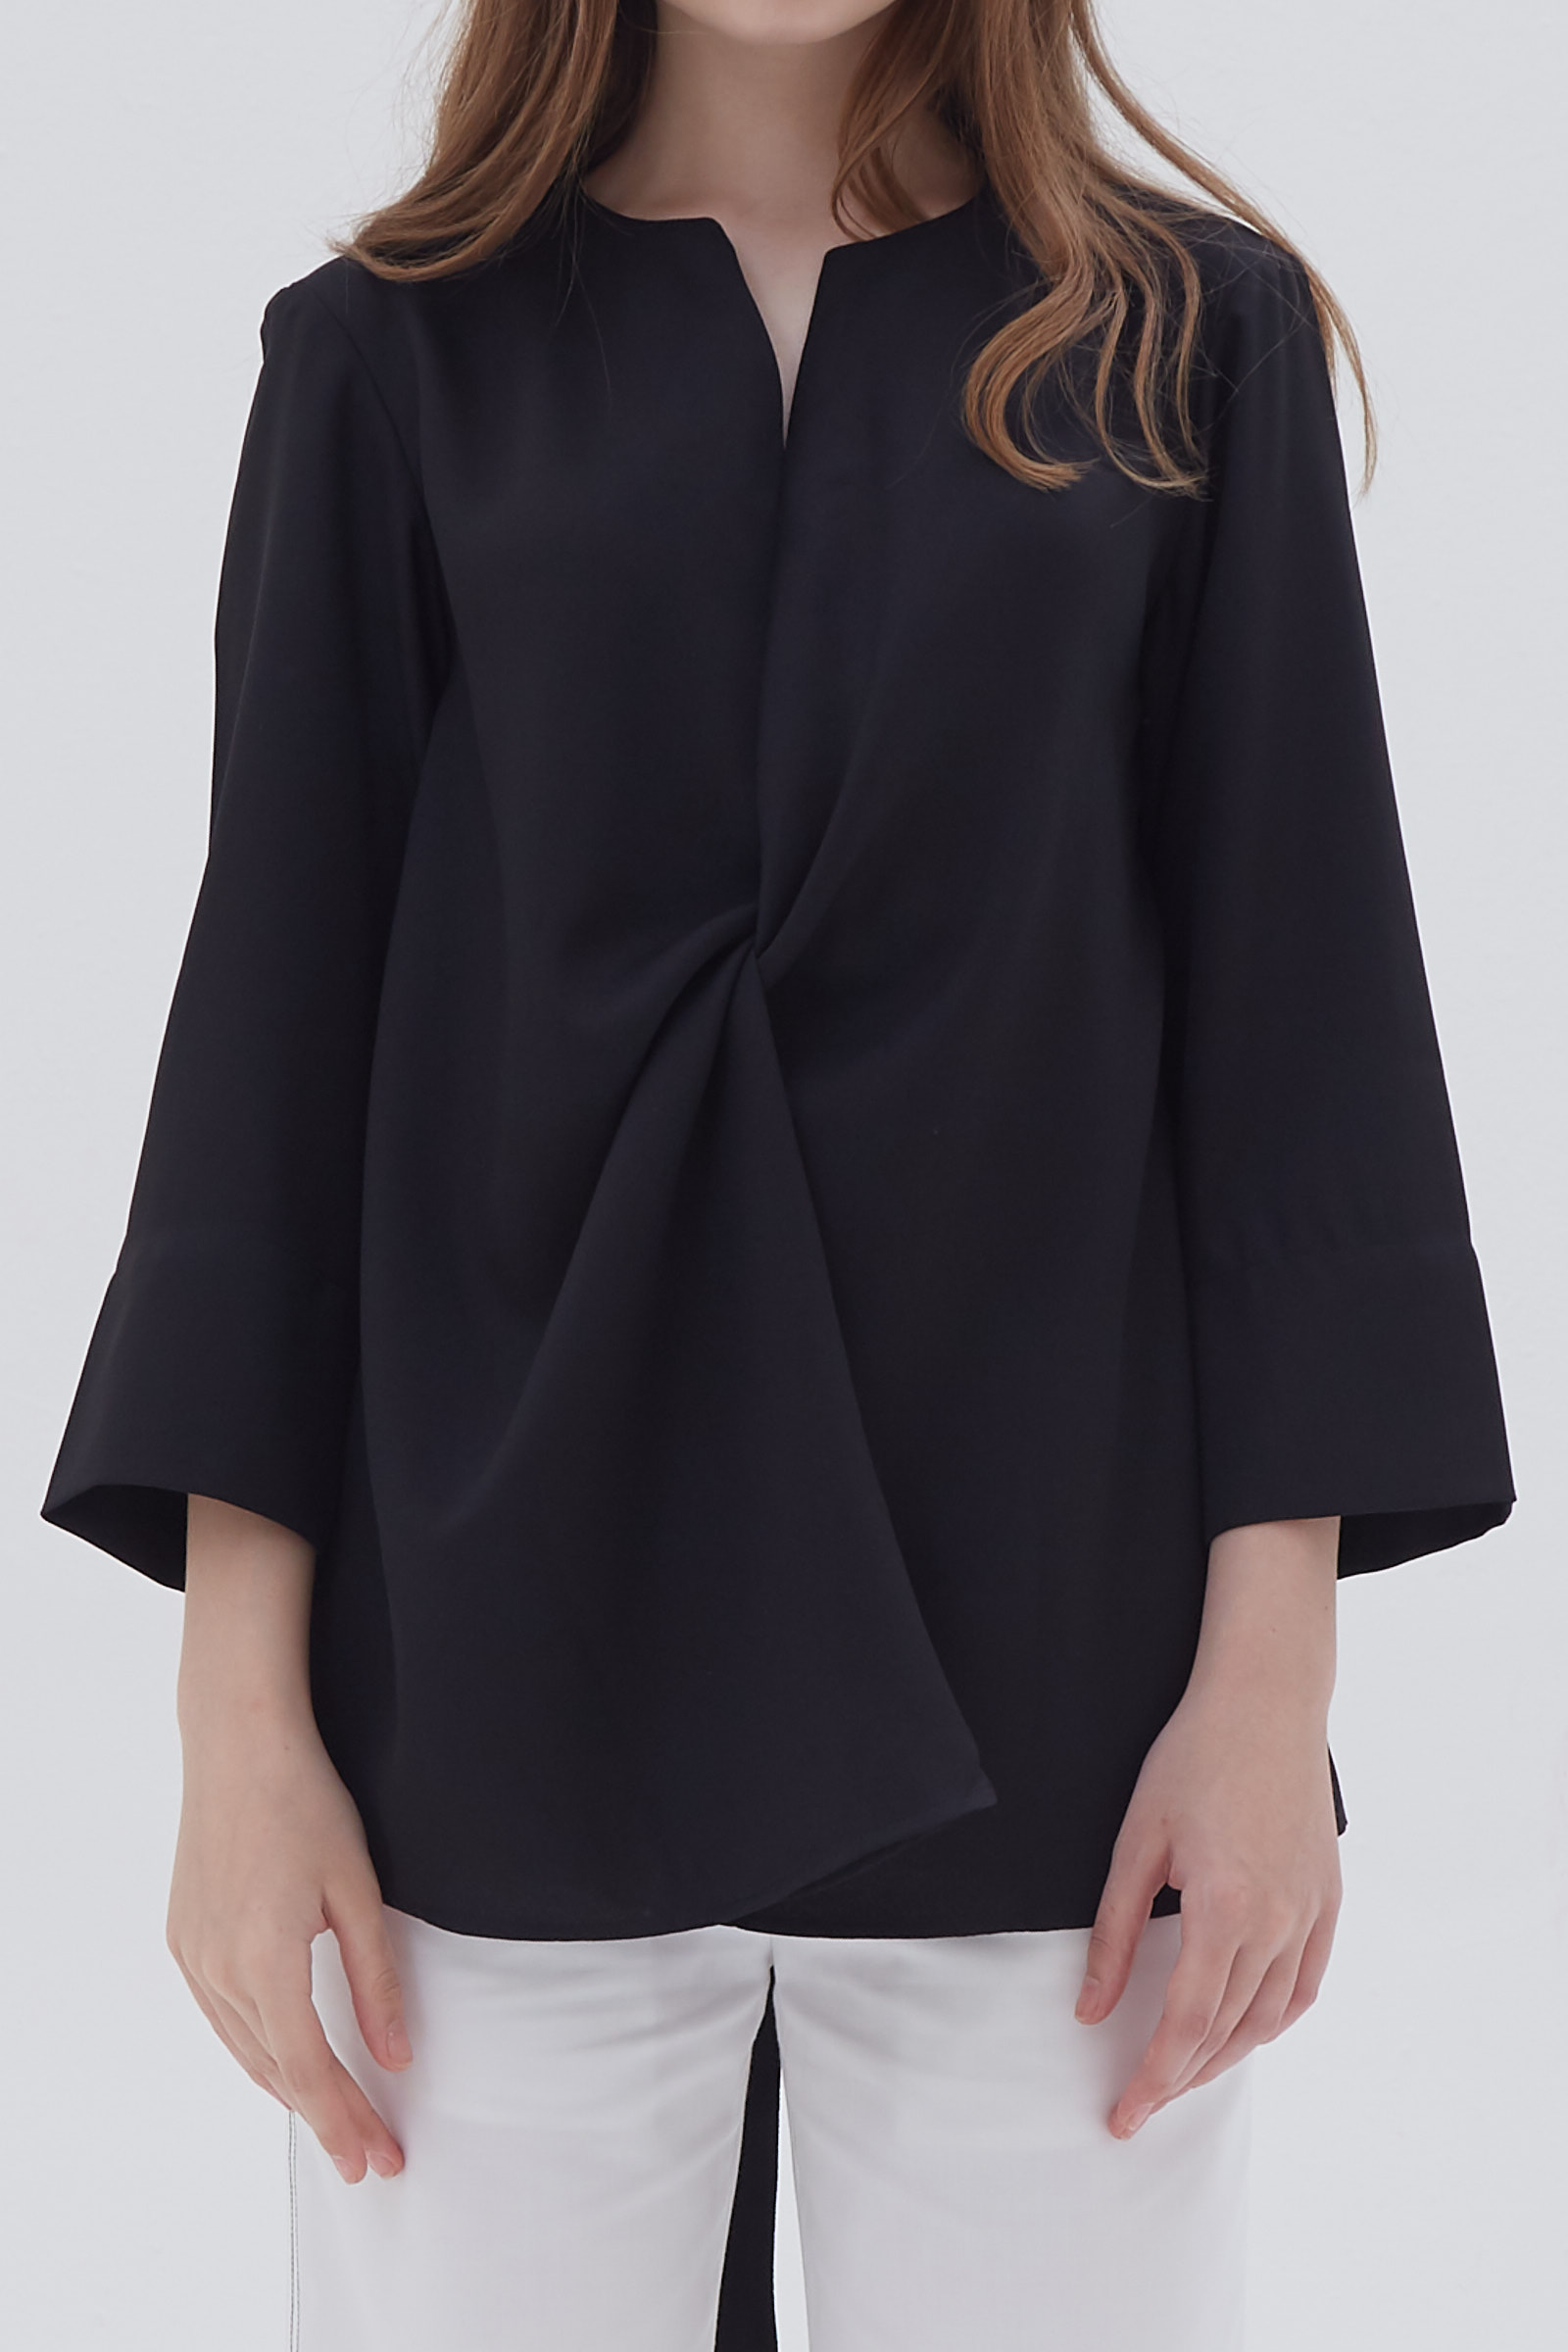 Shopatvelvet Croix Two Way Blouse Black